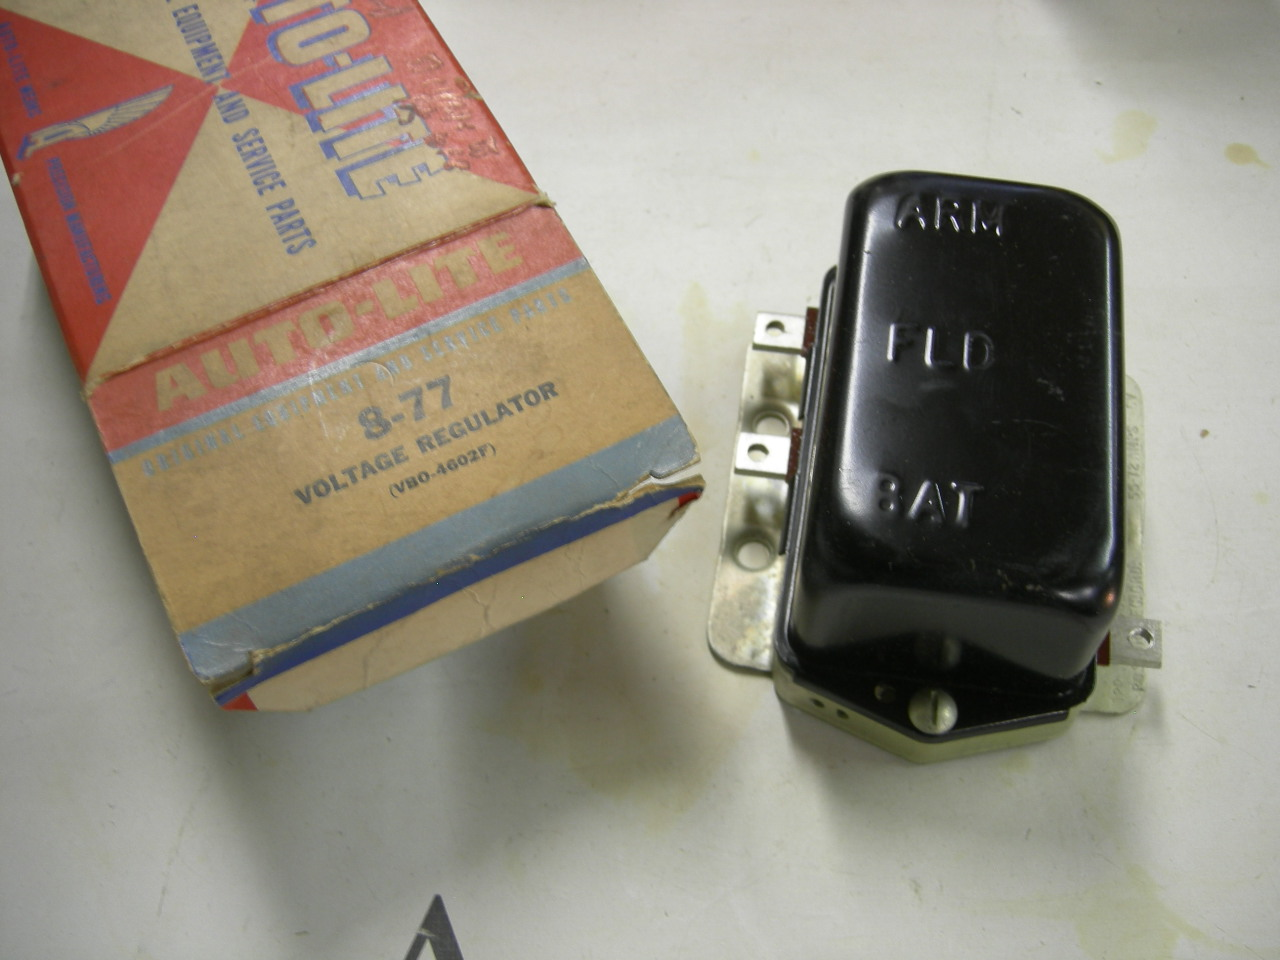 1950 – 51 Chrysler & Imperial voltage regulator NOS VBO-4602F (a VBO-4602F 8-77)